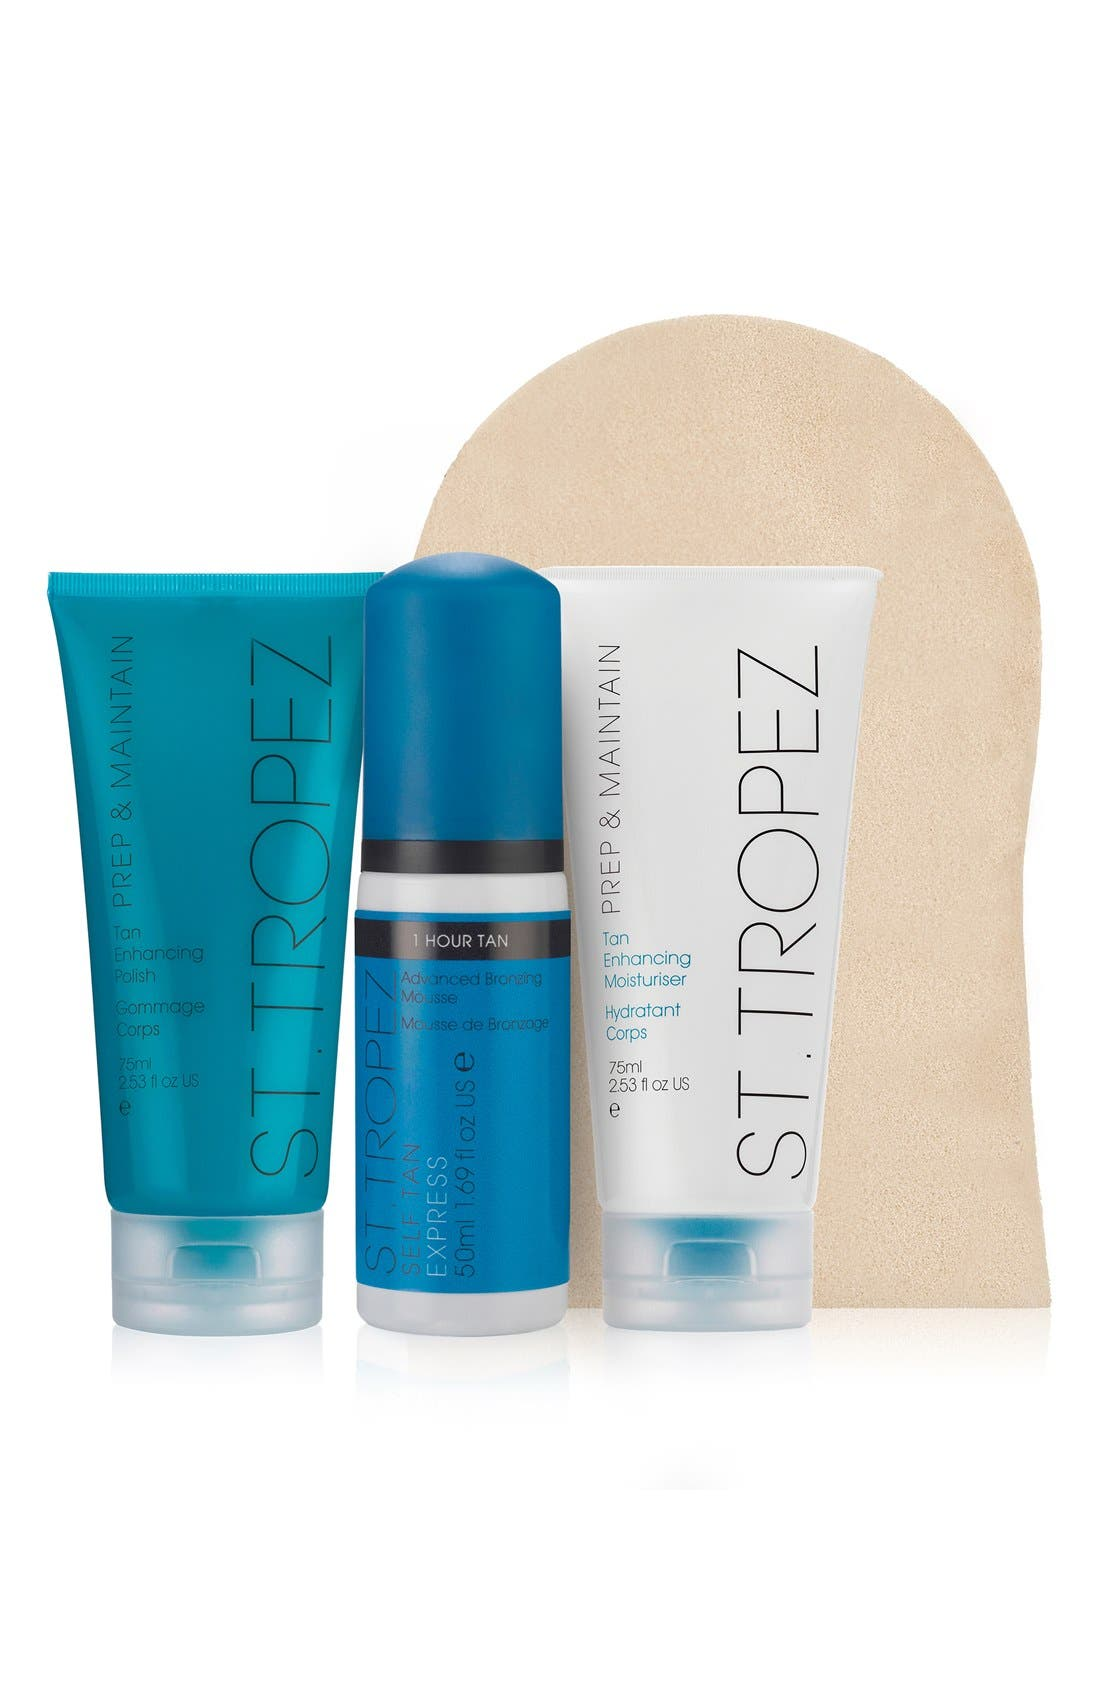 St. Tropez 'Self Tan' Express Starter Kit